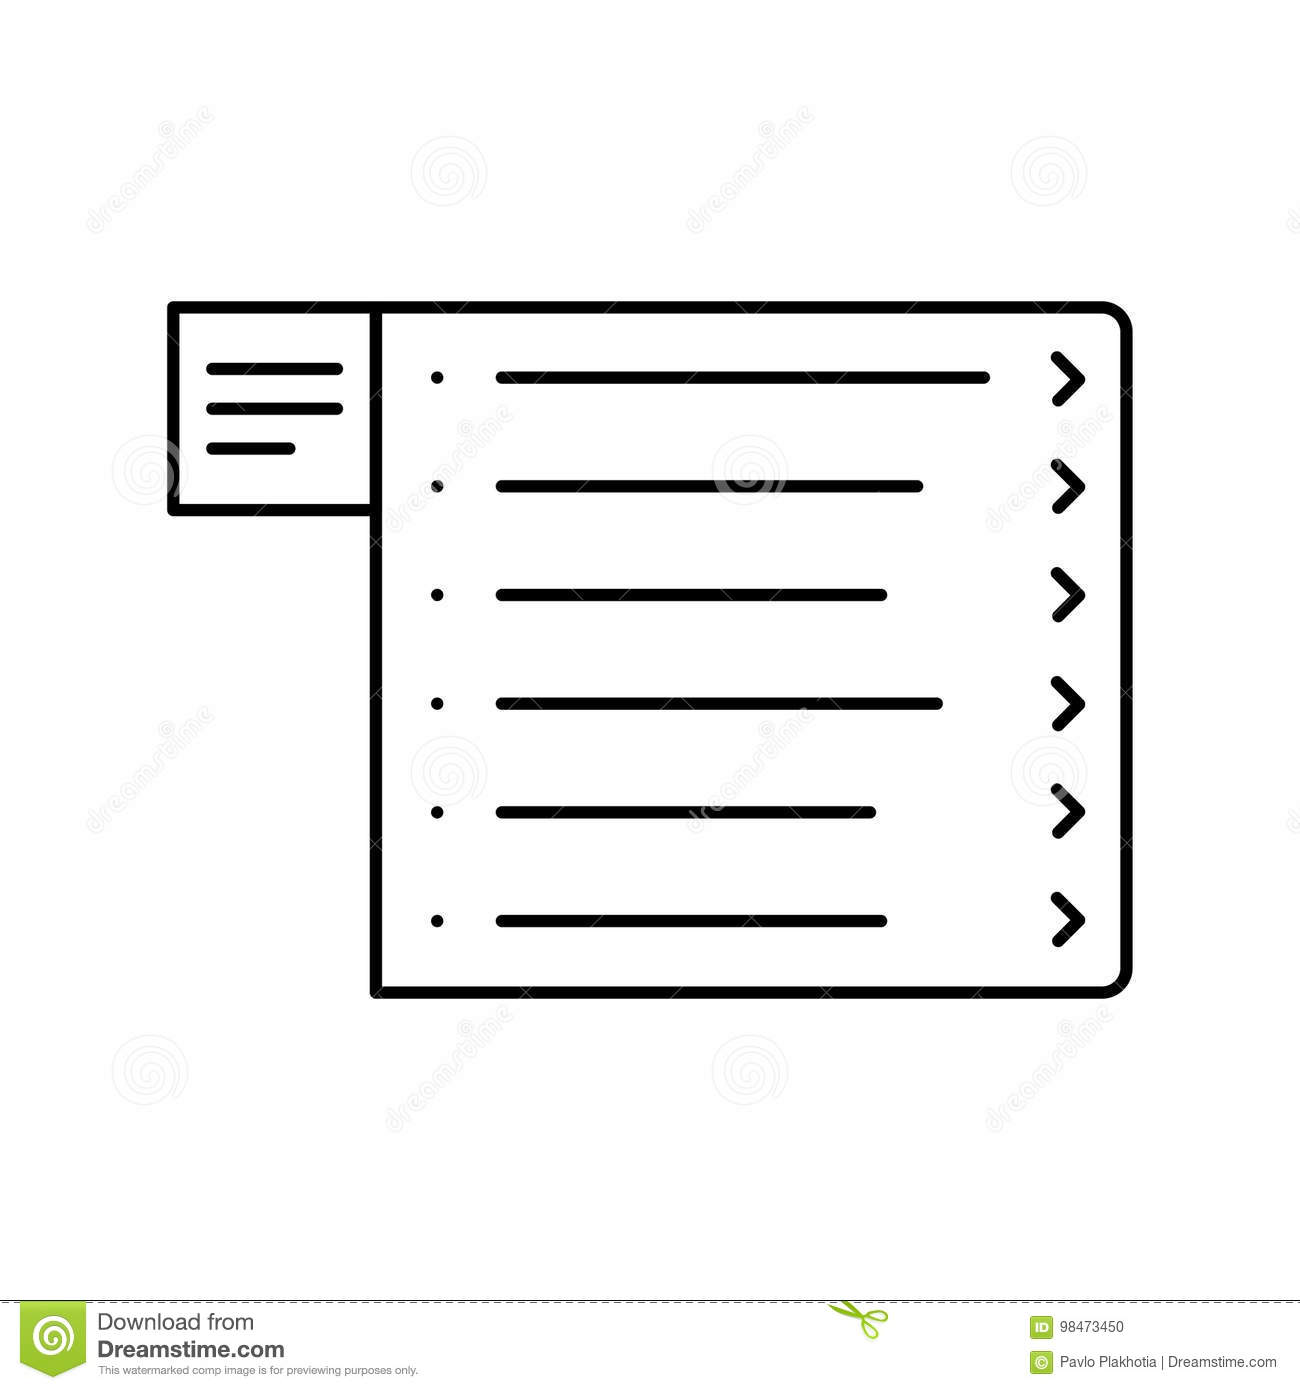 Website wireframe. Menu line icon. Web page user interface